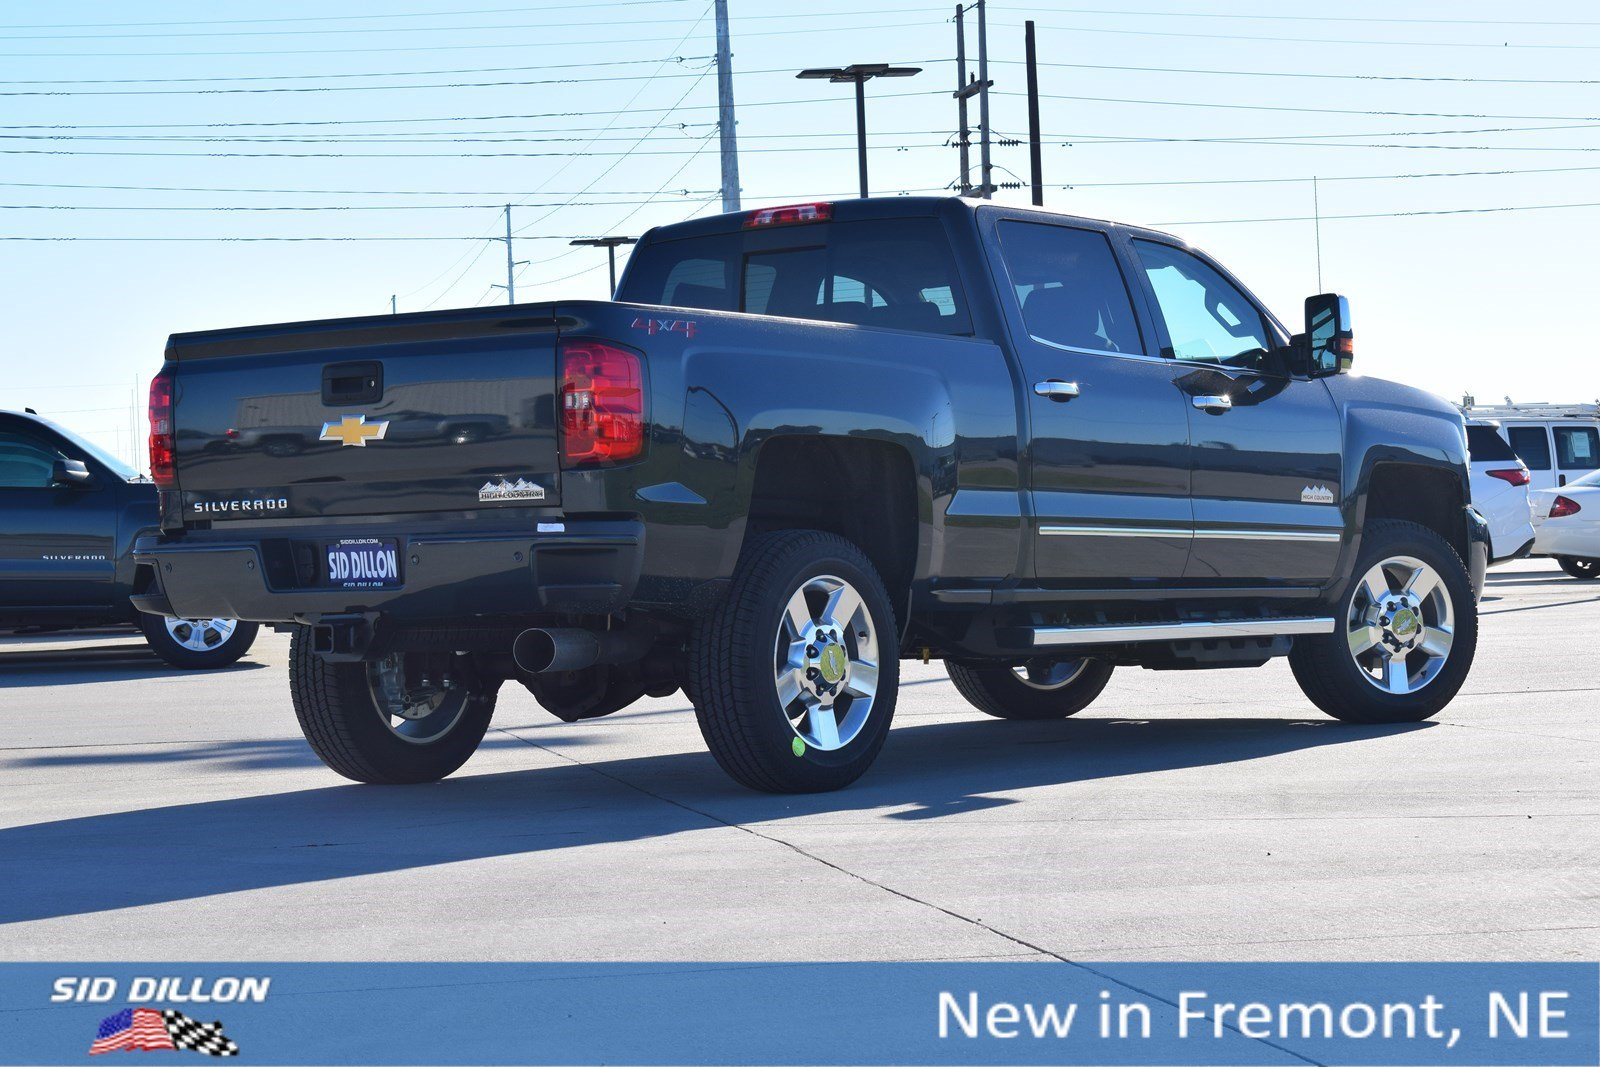 New 2019 Chevrolet Silverado 2500hd High Country Crew Cab In Fremont Tow Vehicle Alternator To Trailer Battery Wiring 7way Ford Truck 1t19292 Sid Dillon Auto Group